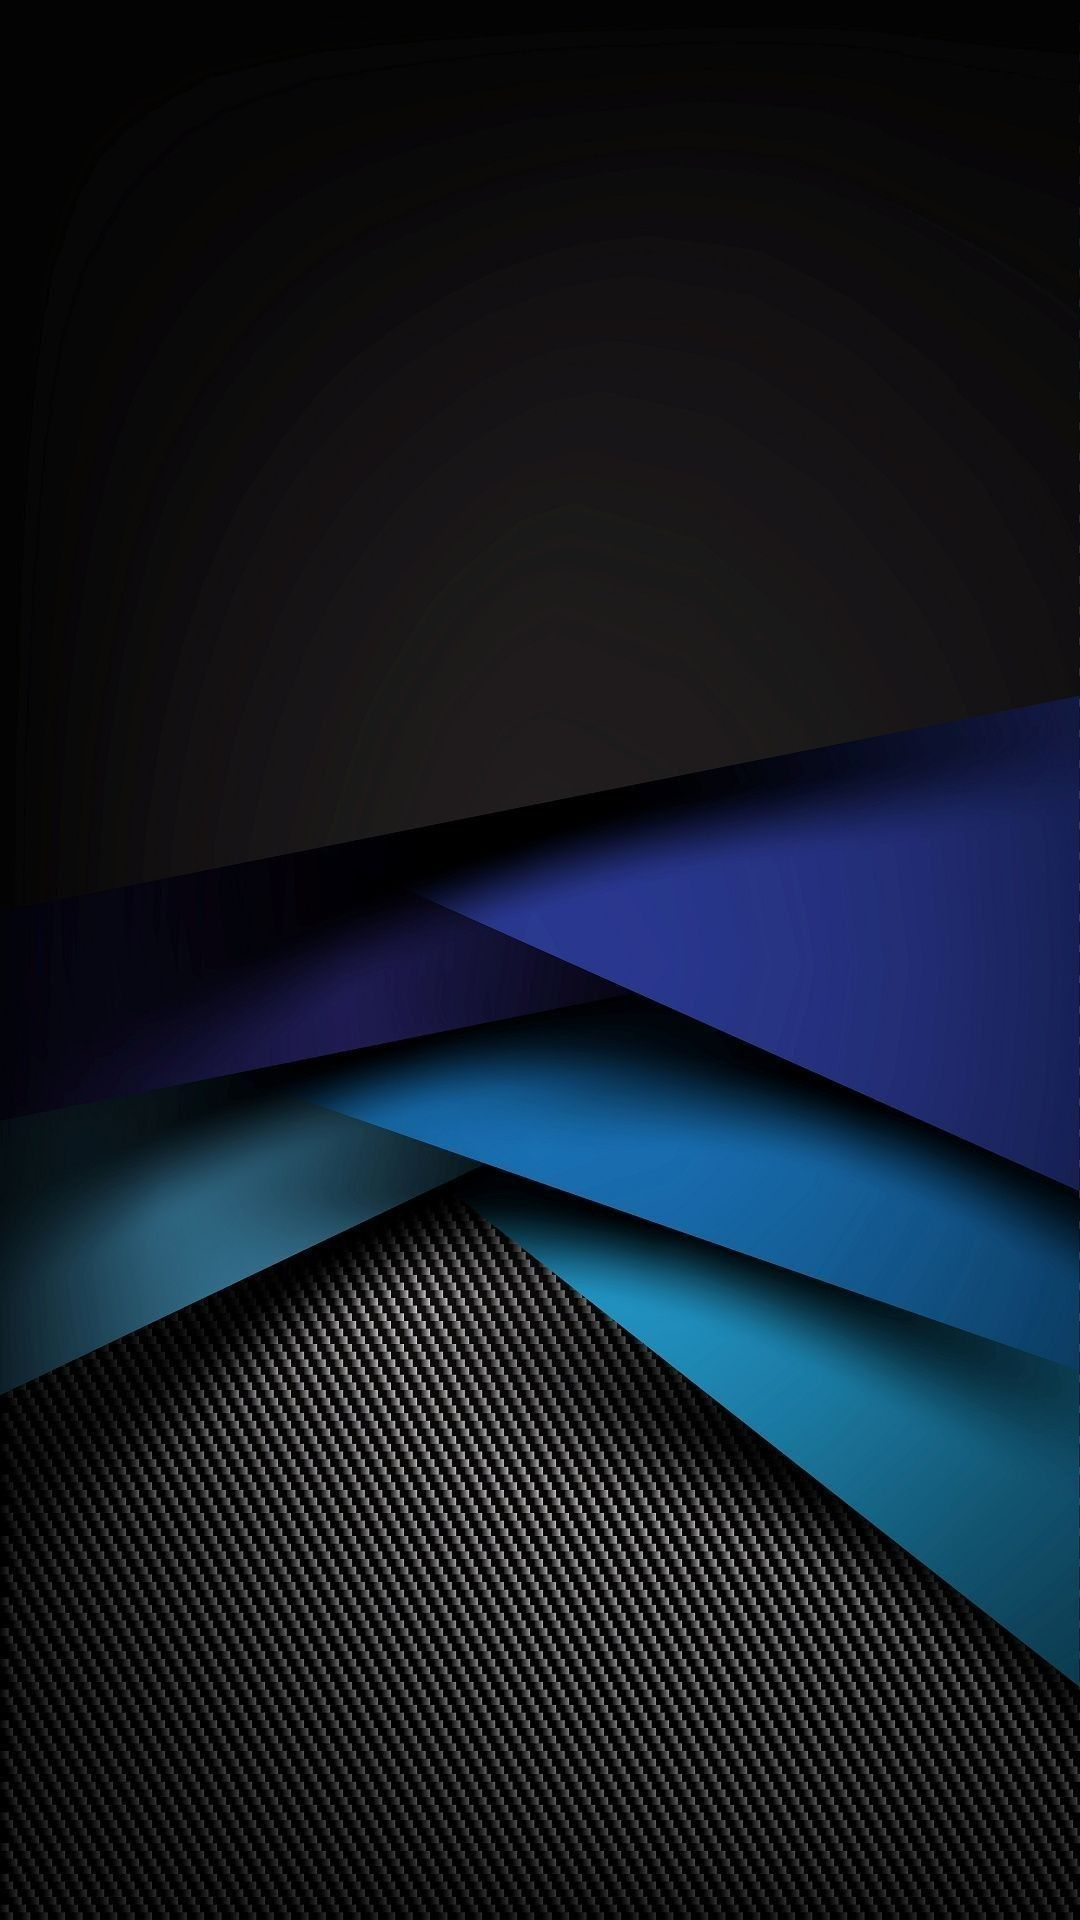 Abstract Geometric Android Iphone Desktop Hd Backgrounds Wallpapers 1080p 4k 105739 Hdwa Gold Wallpaper Phone Grey Wallpaper Iphone Dark Wallpaper 1080p wallpapers android wallpapers hd